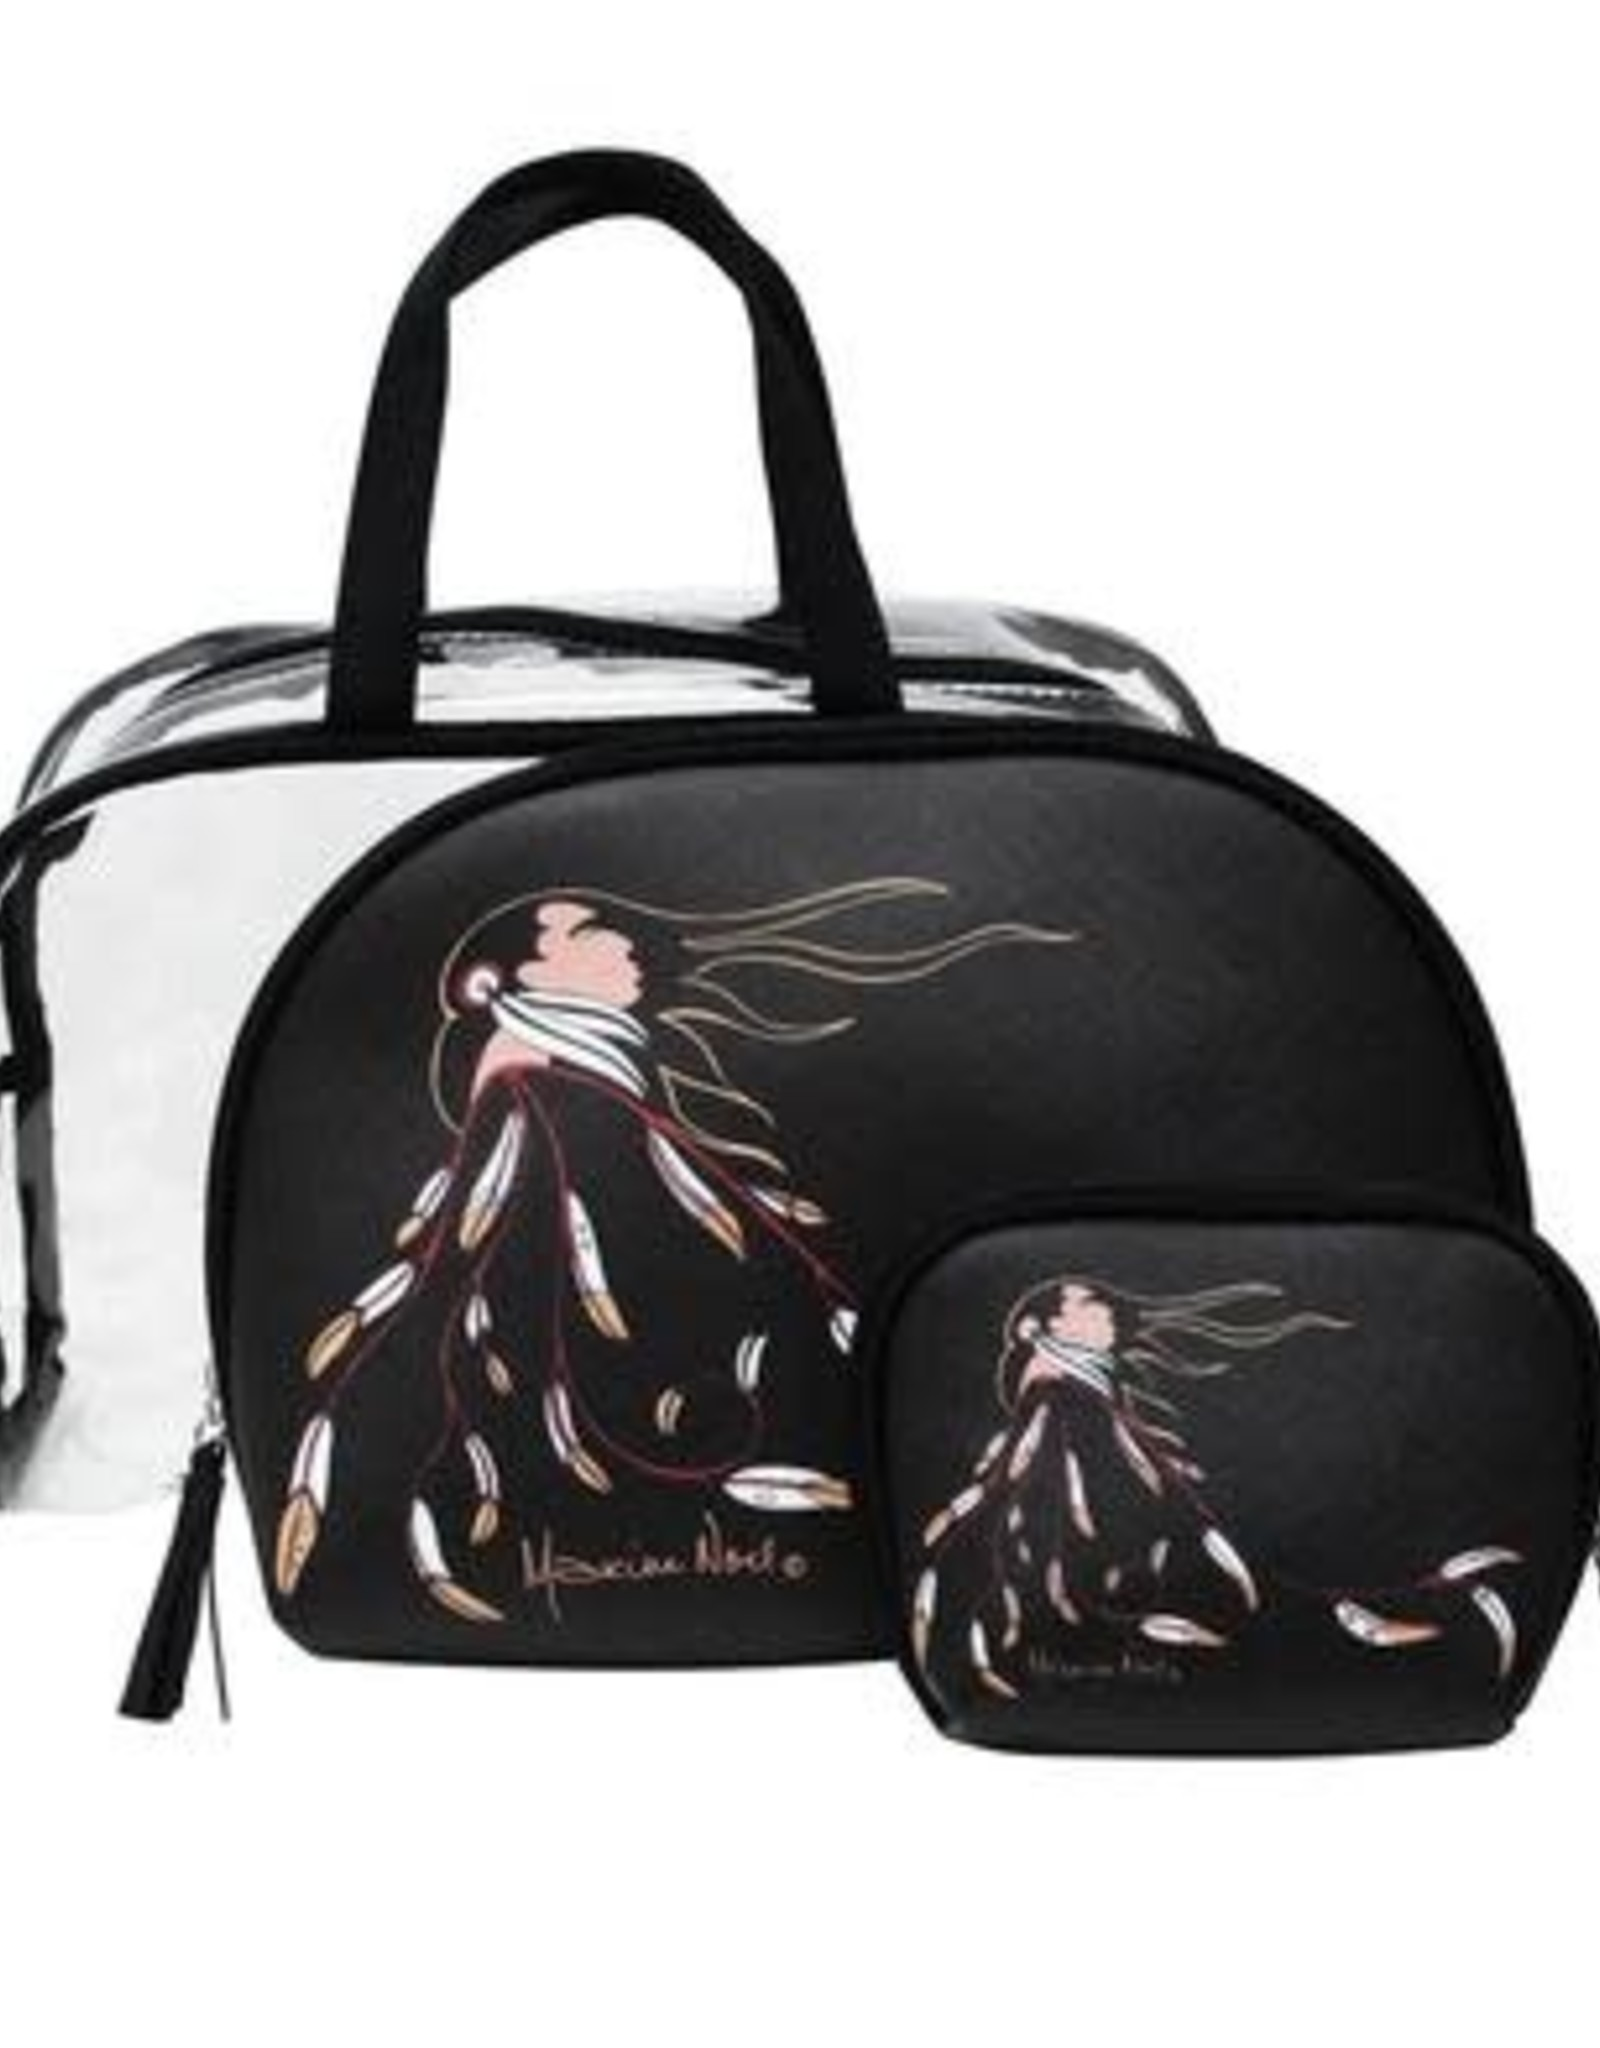 Cosmetic Bag Set -Eagle's Gift by Maxine Noel